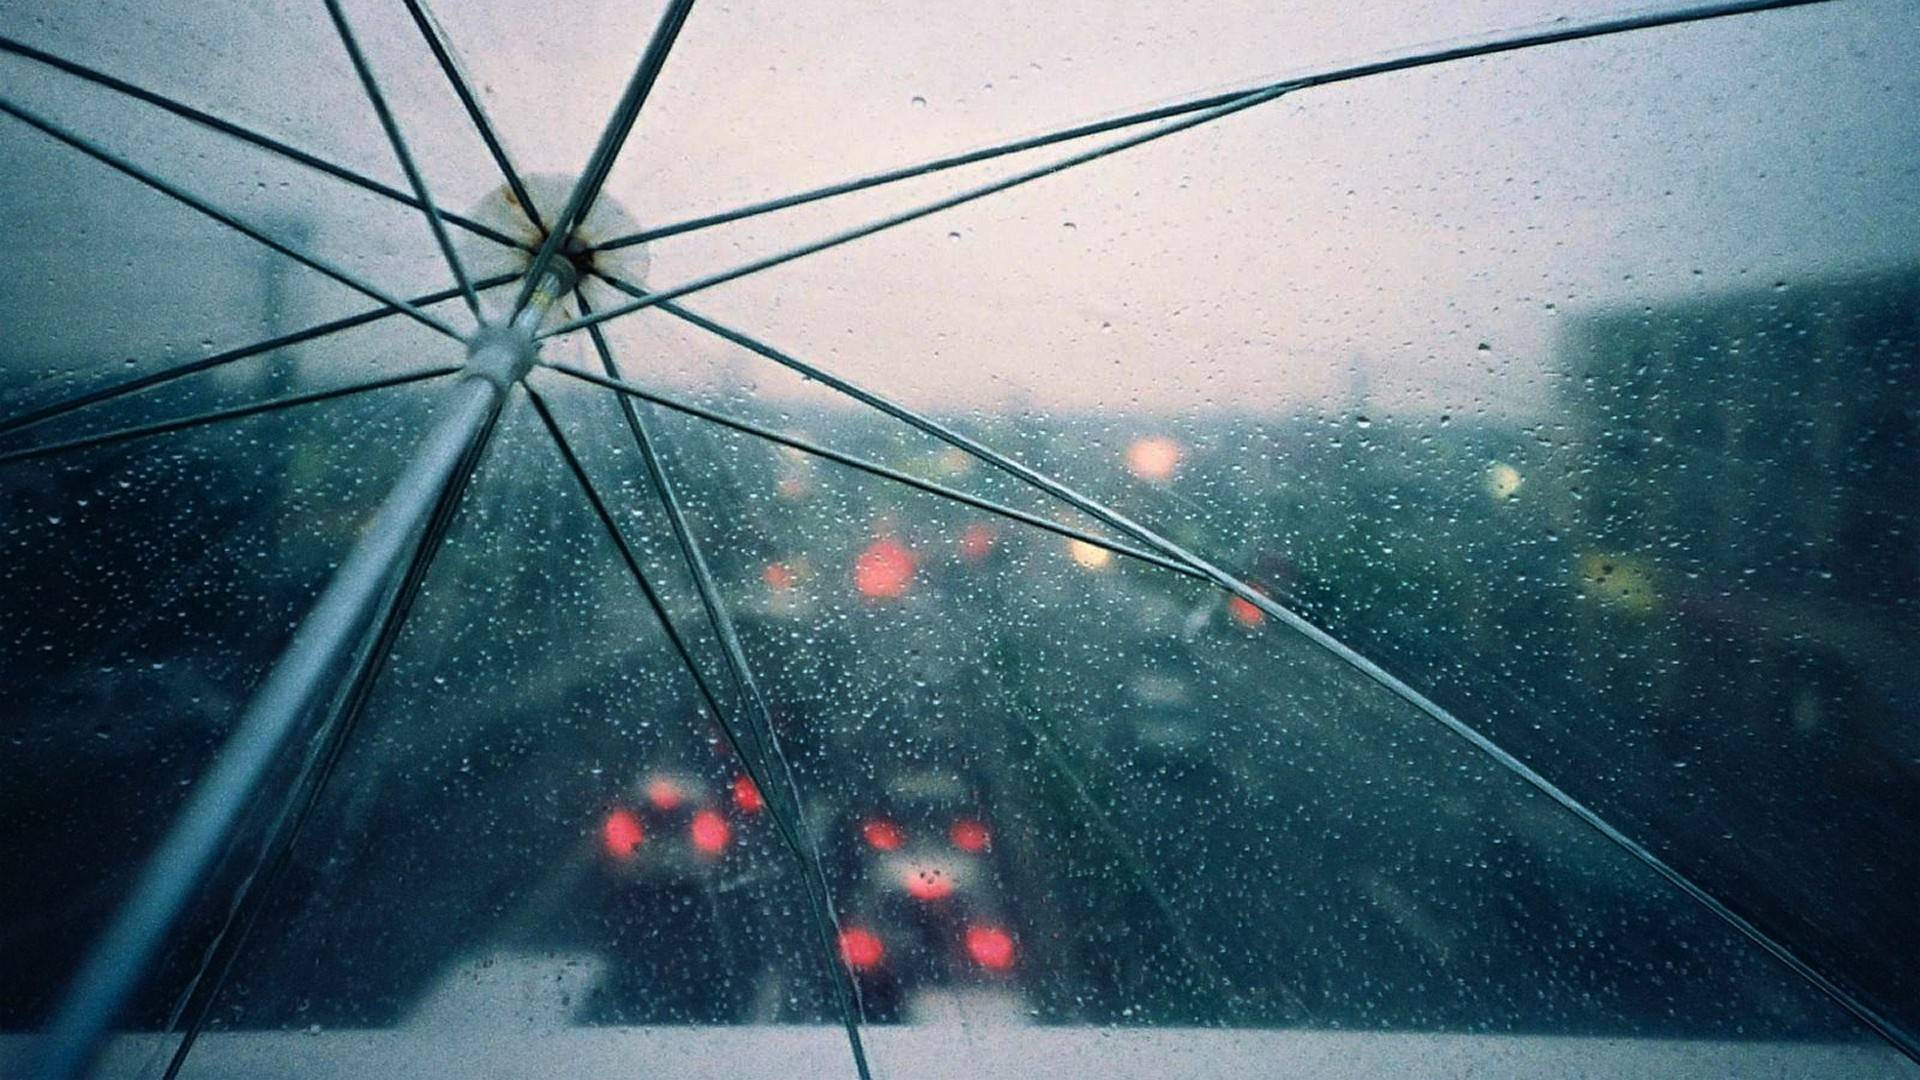 Rain Wallpaper For Mobile Hd Wallpaper Liar